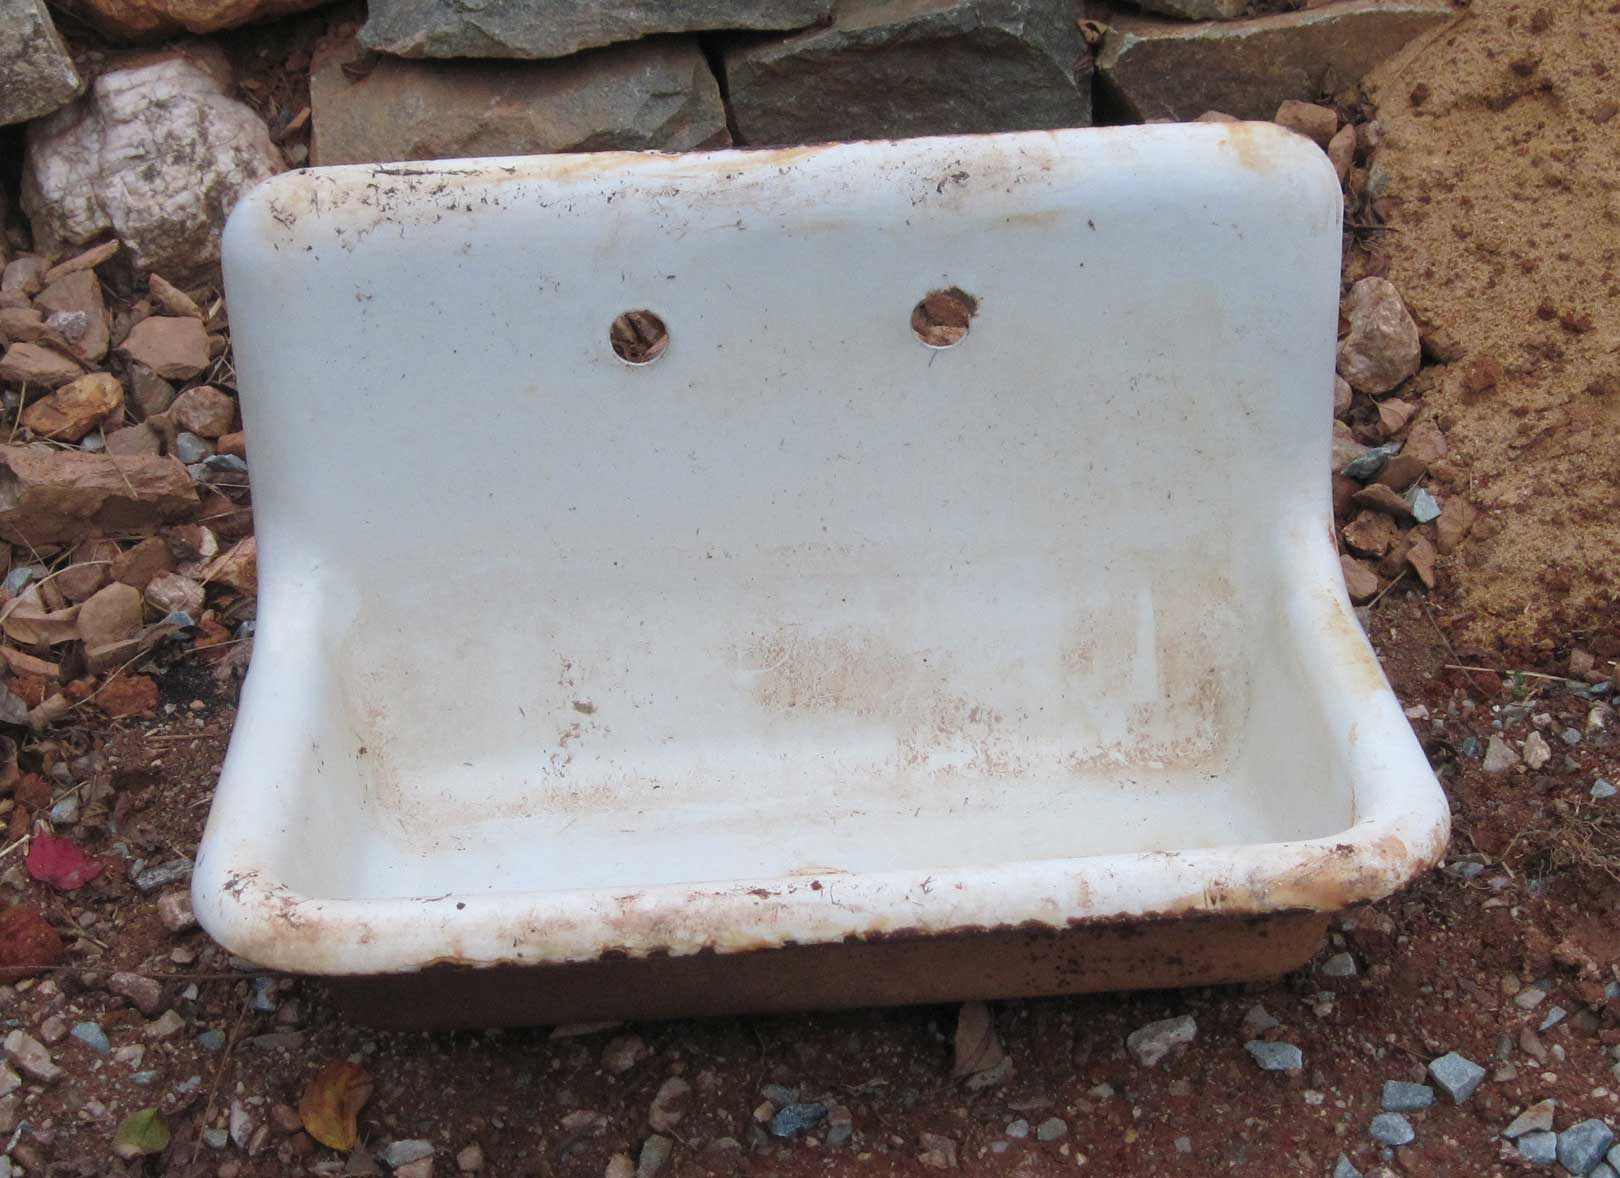 cast iron sink as a work of art refinish kitchen sink Apparently